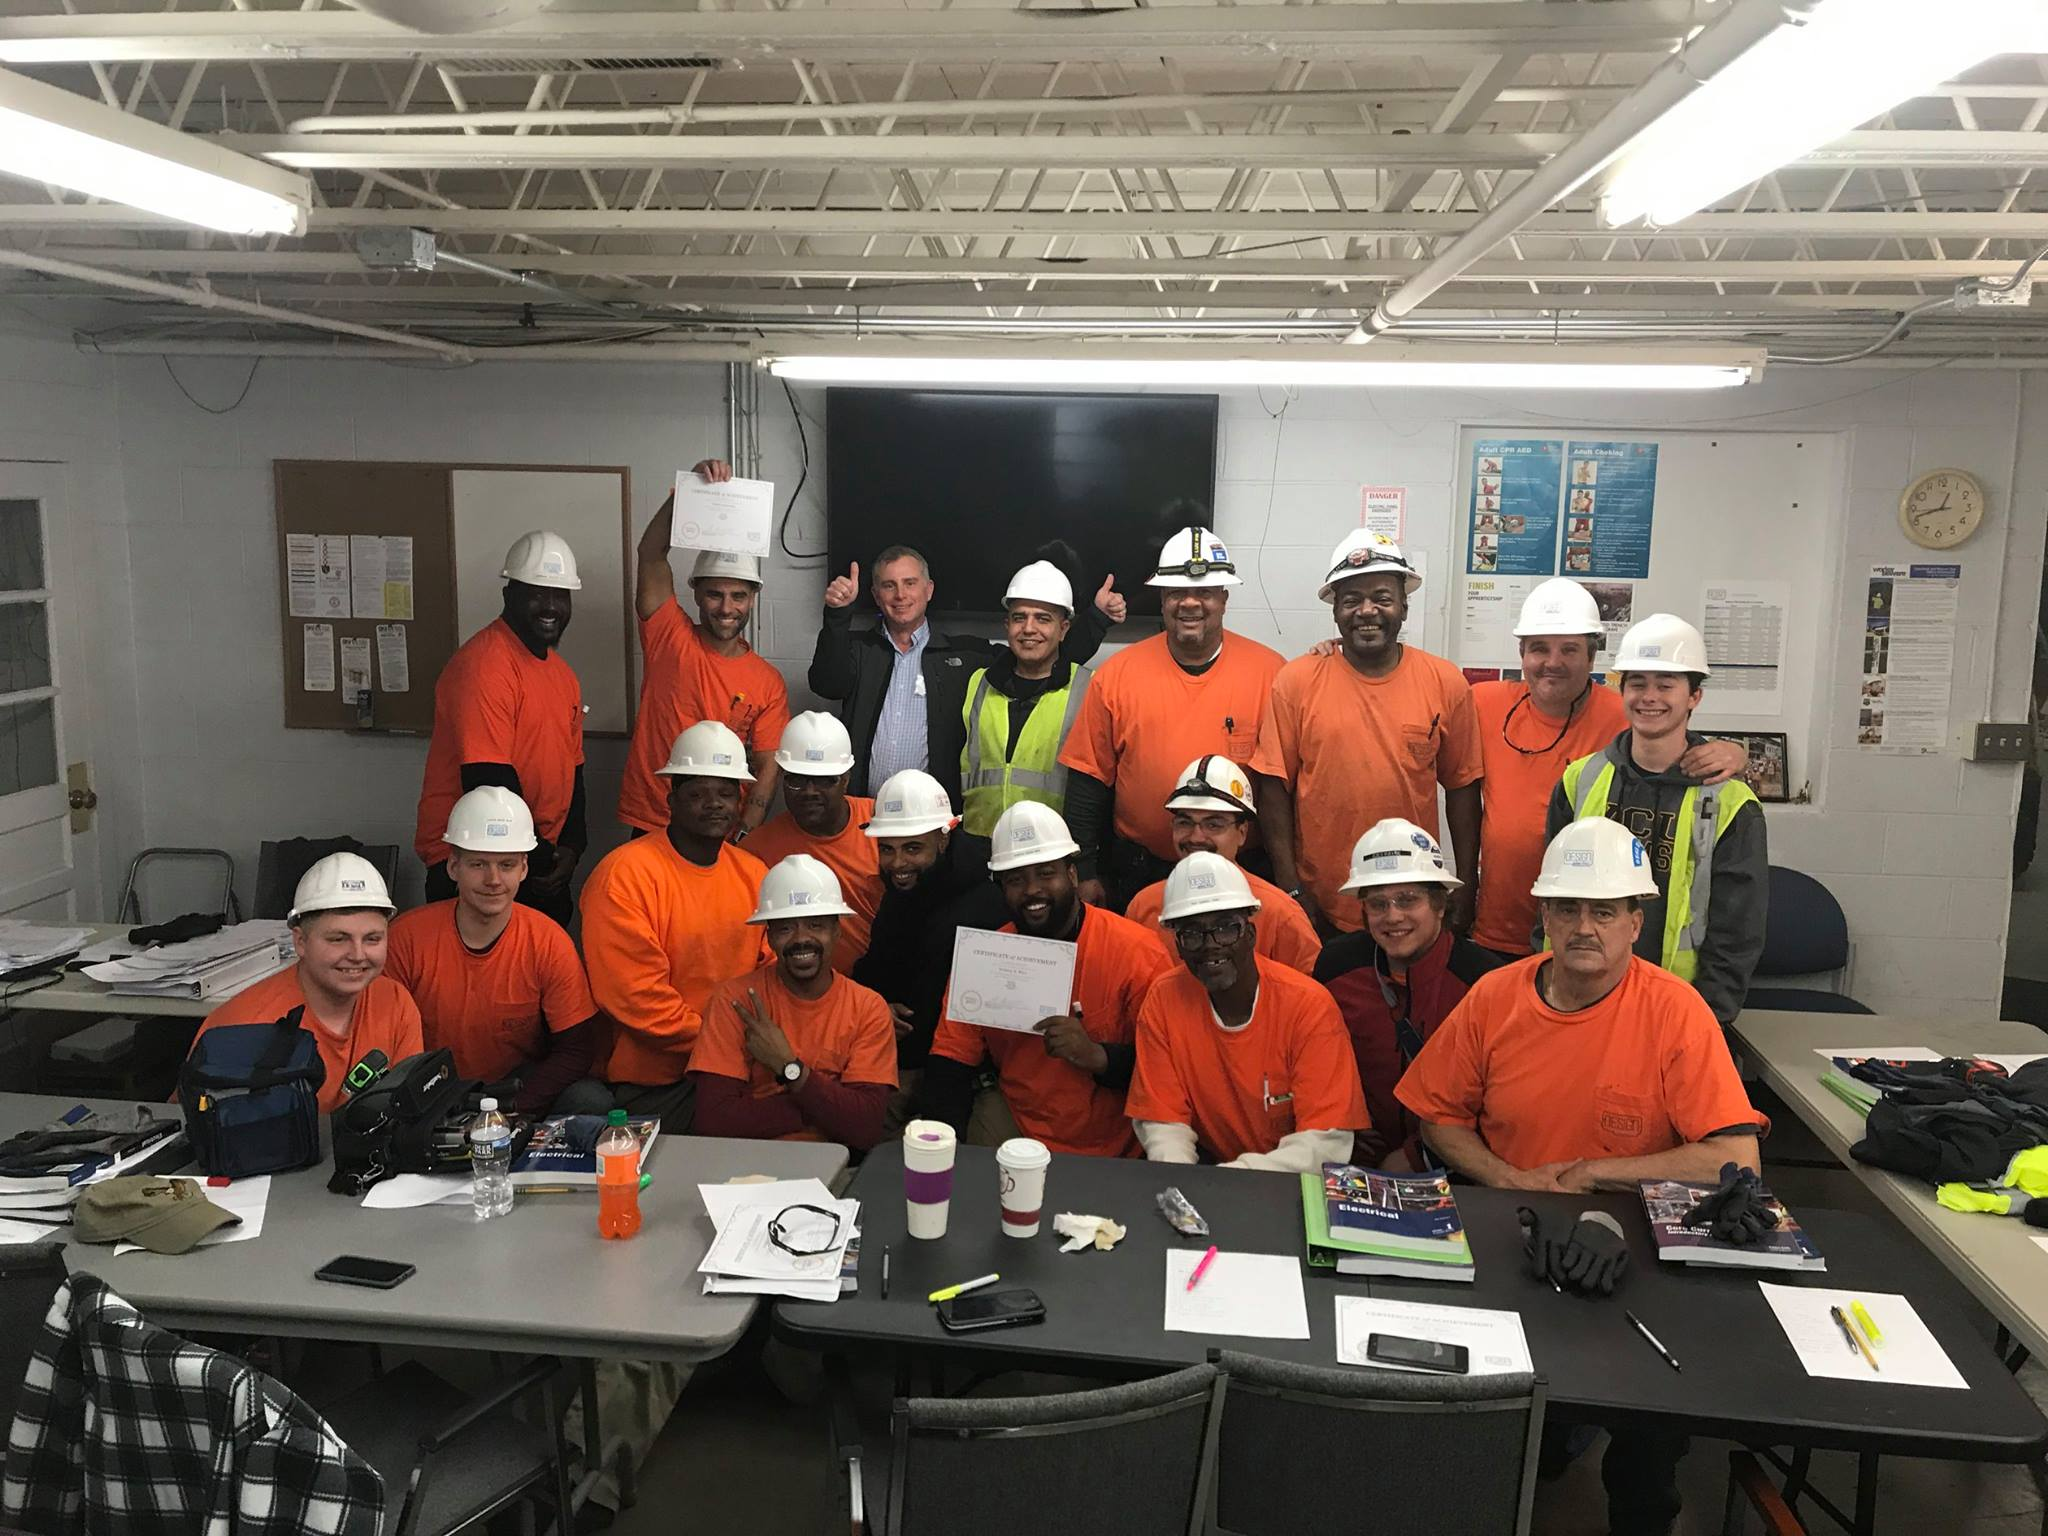 ELIP Grads ready for a new career as electricians. Congratulations! This group will go far! -